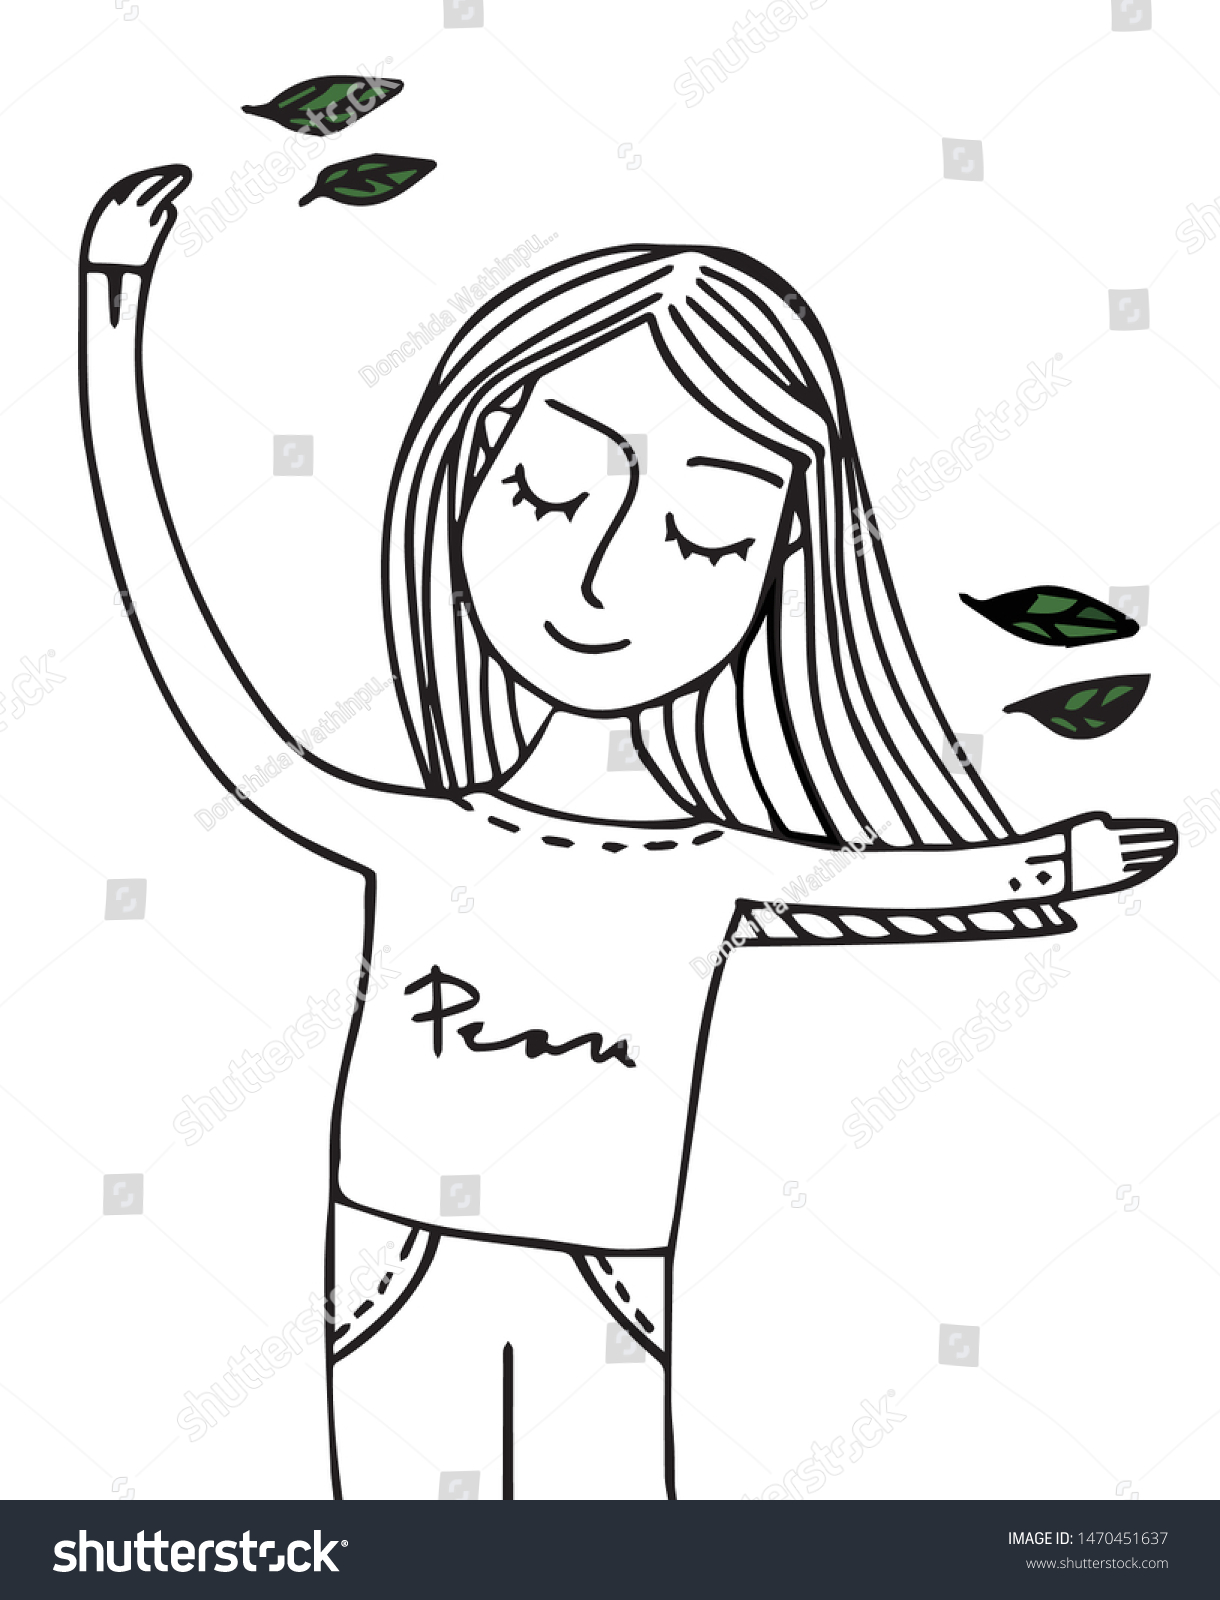 Doodle hand drawn vector illustrated in wellness, happiness and peace concept. The black and white vector shows a girl or woman standing in clam yoga or exercise pose with smiling face with leaves.